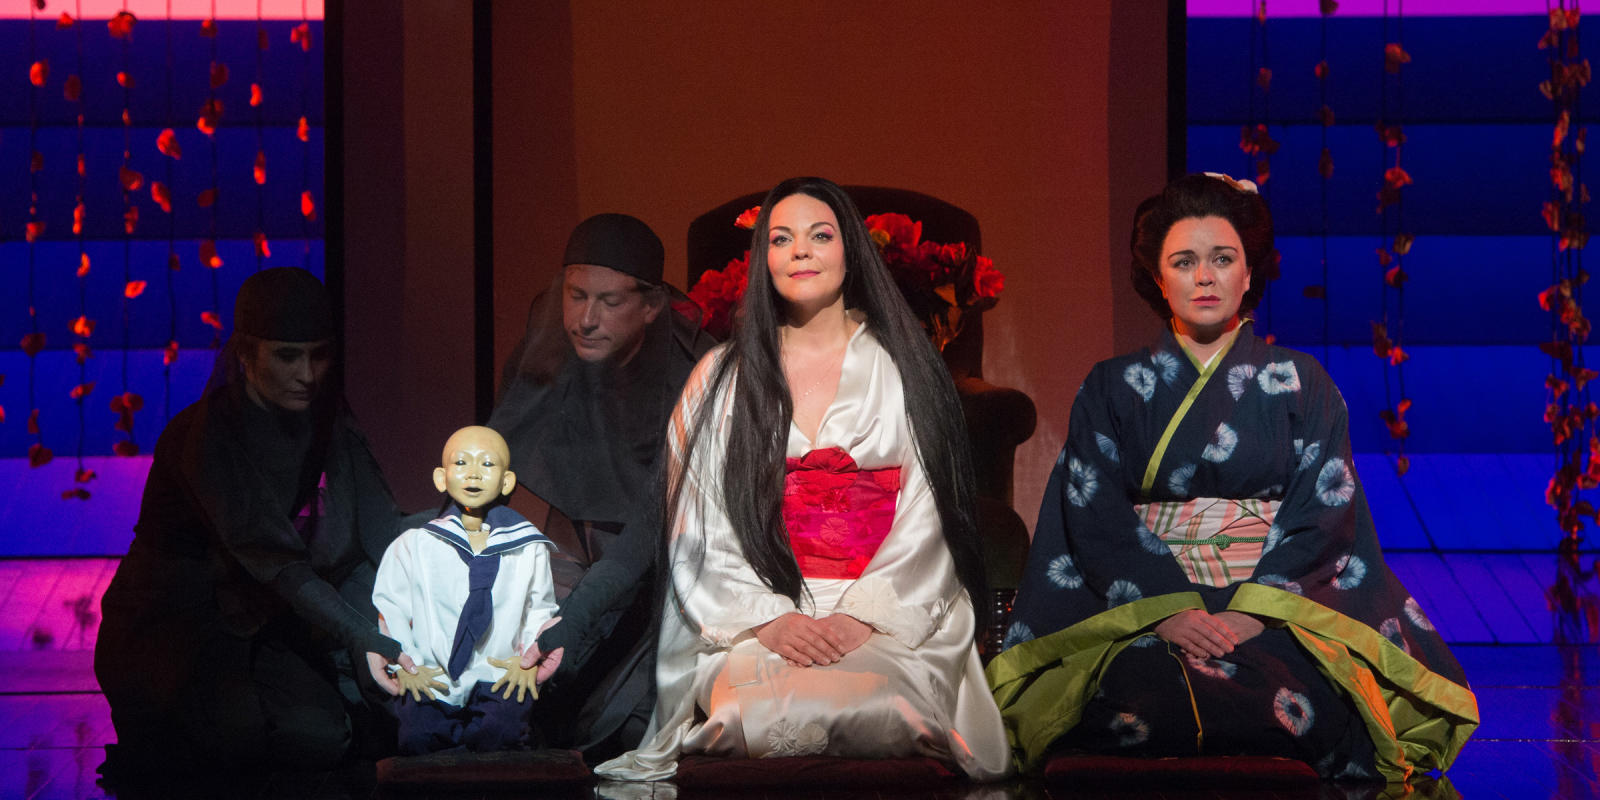 ENO Madam_Butterfly Sorrow with Rena Harms and Stephanie Windsor-Lewis 1 (c) Tom Bowles